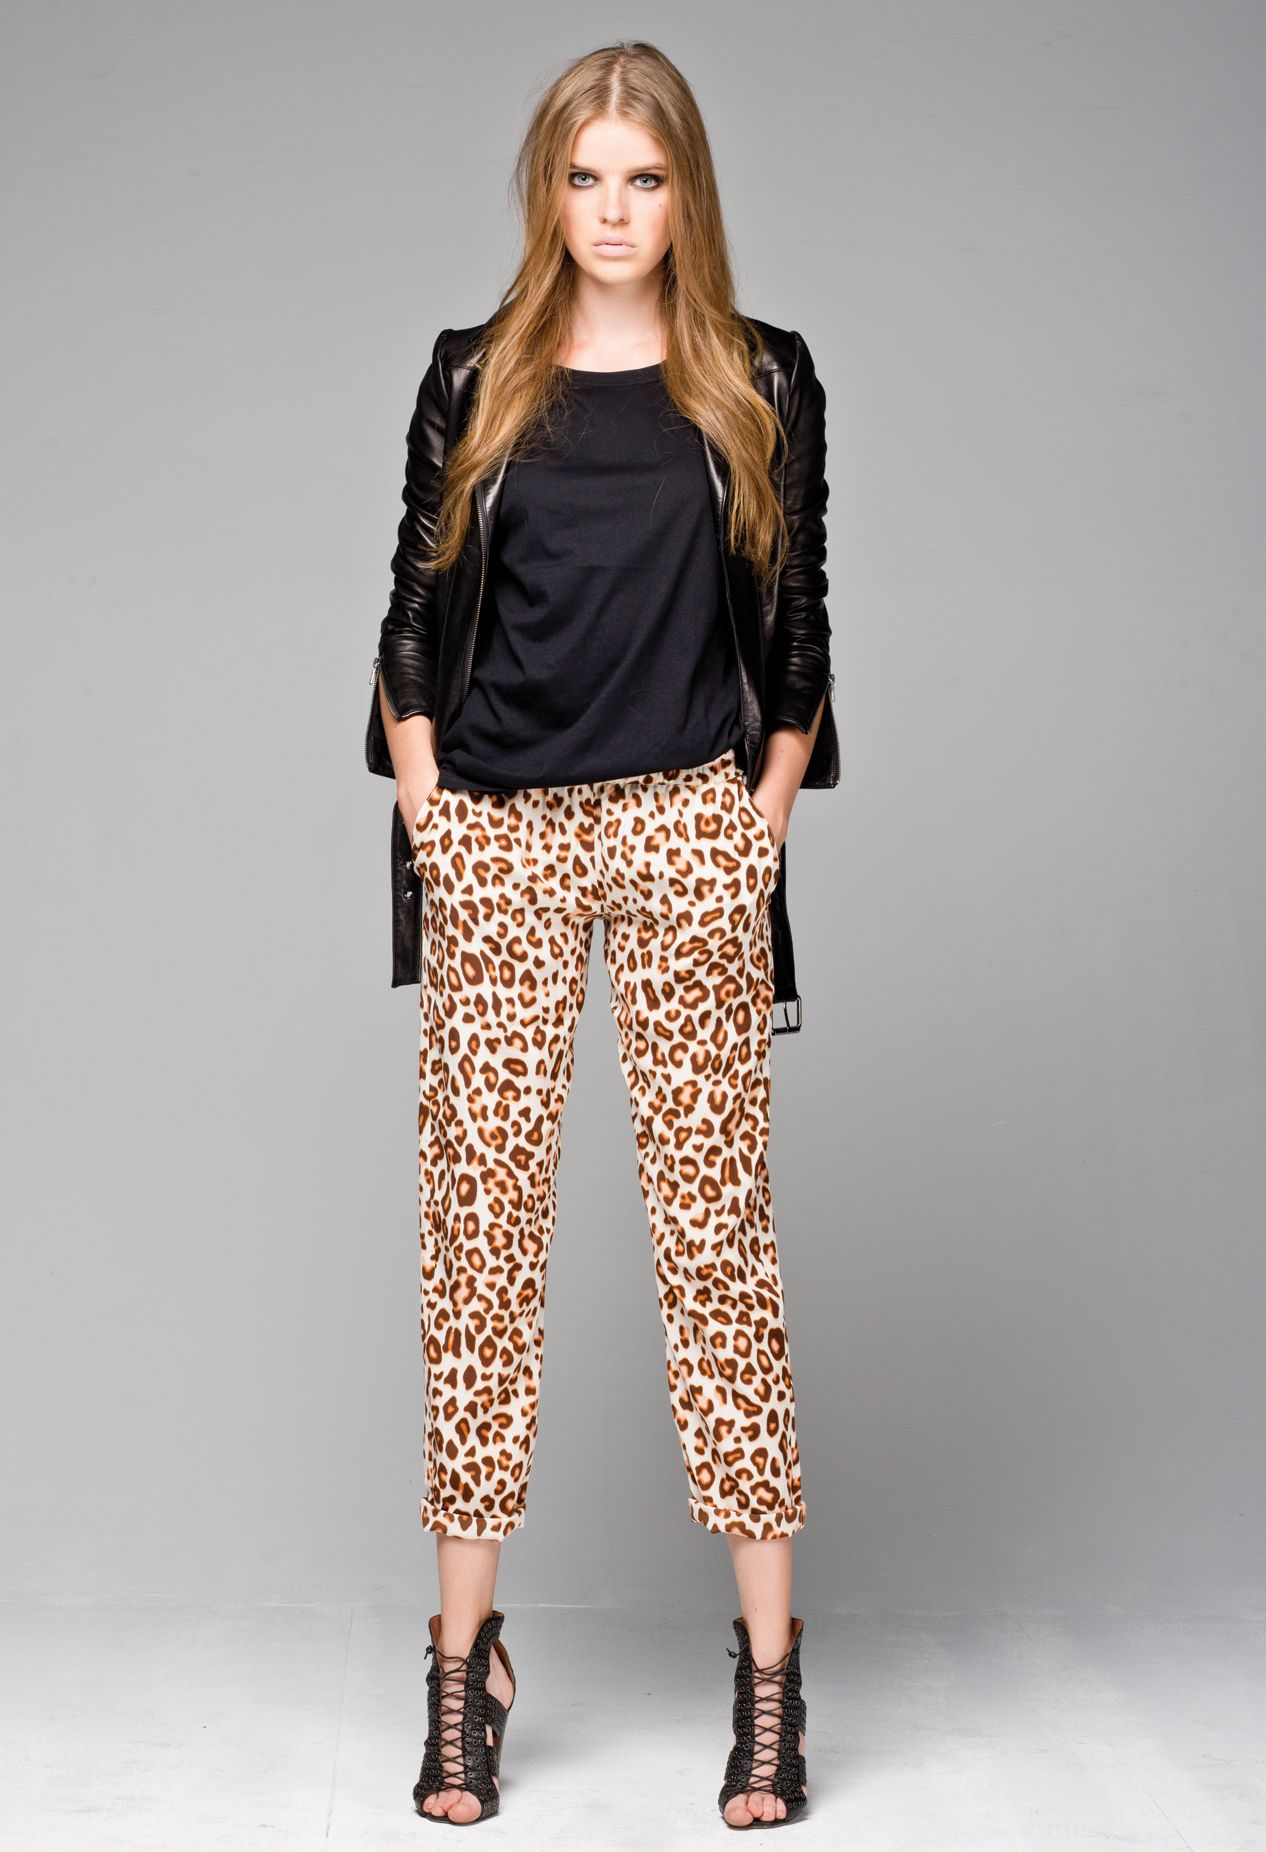 6cf808a8bdff Little Joe Woman's Wolf Whistle Leather Jacket, and Aimless silk leopard  print pants